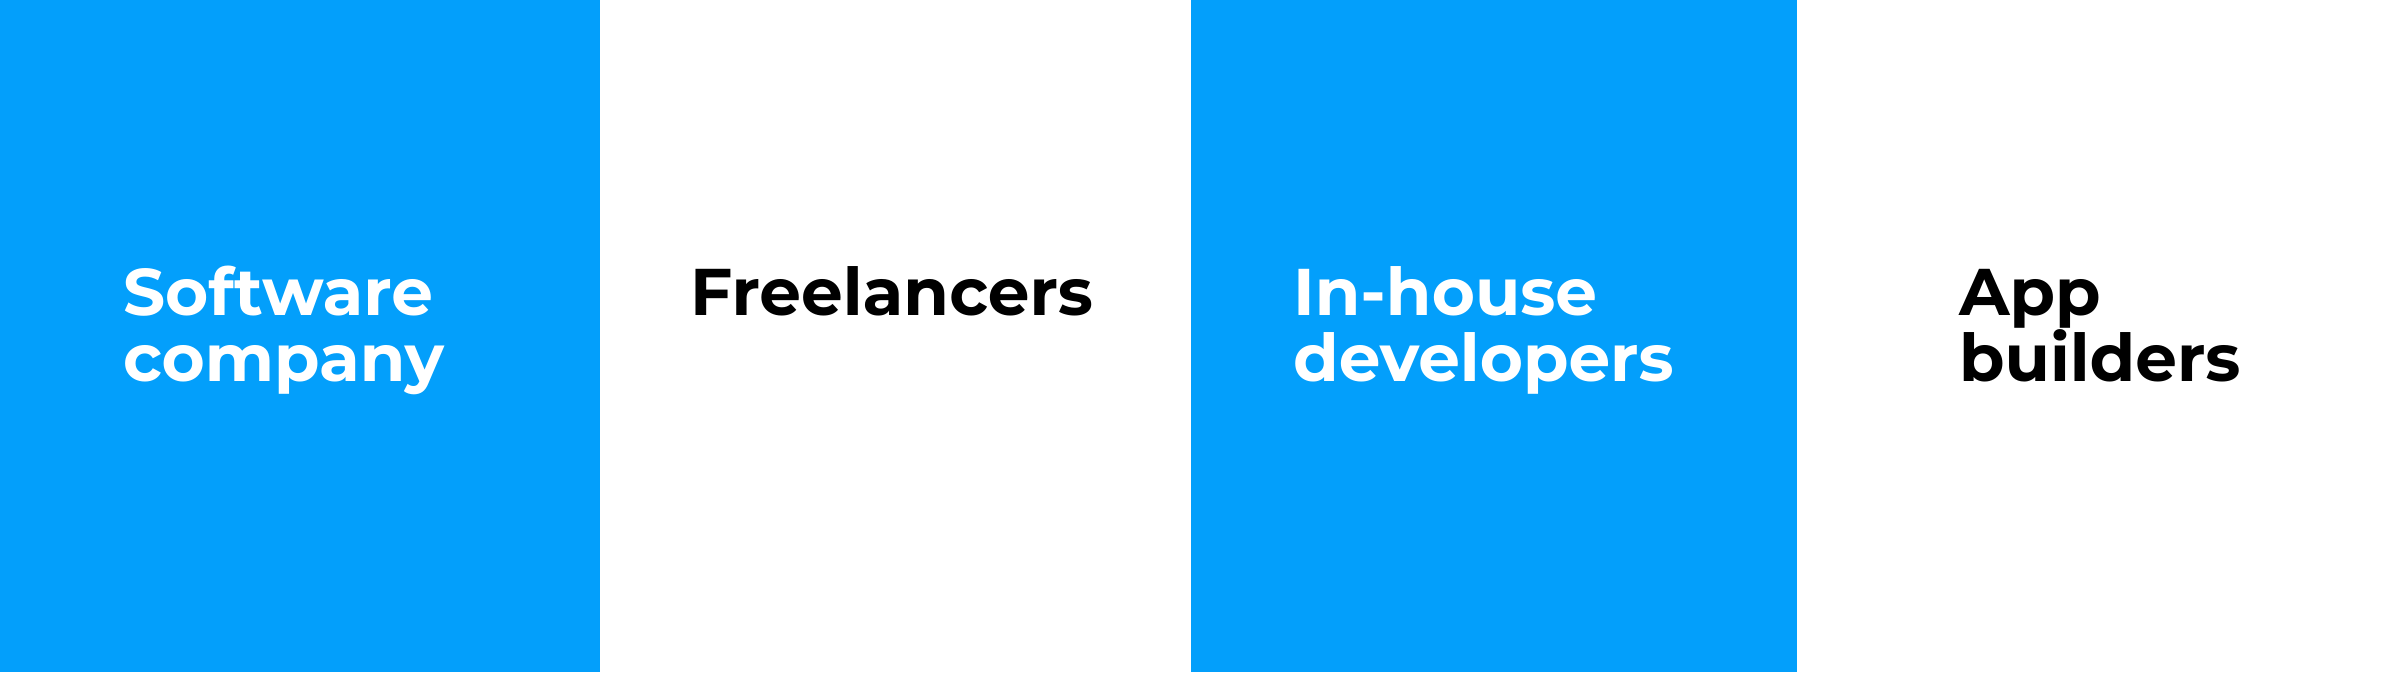 Software-company-vs-Freelancers-vs-in-house-developers-vs-app-builders